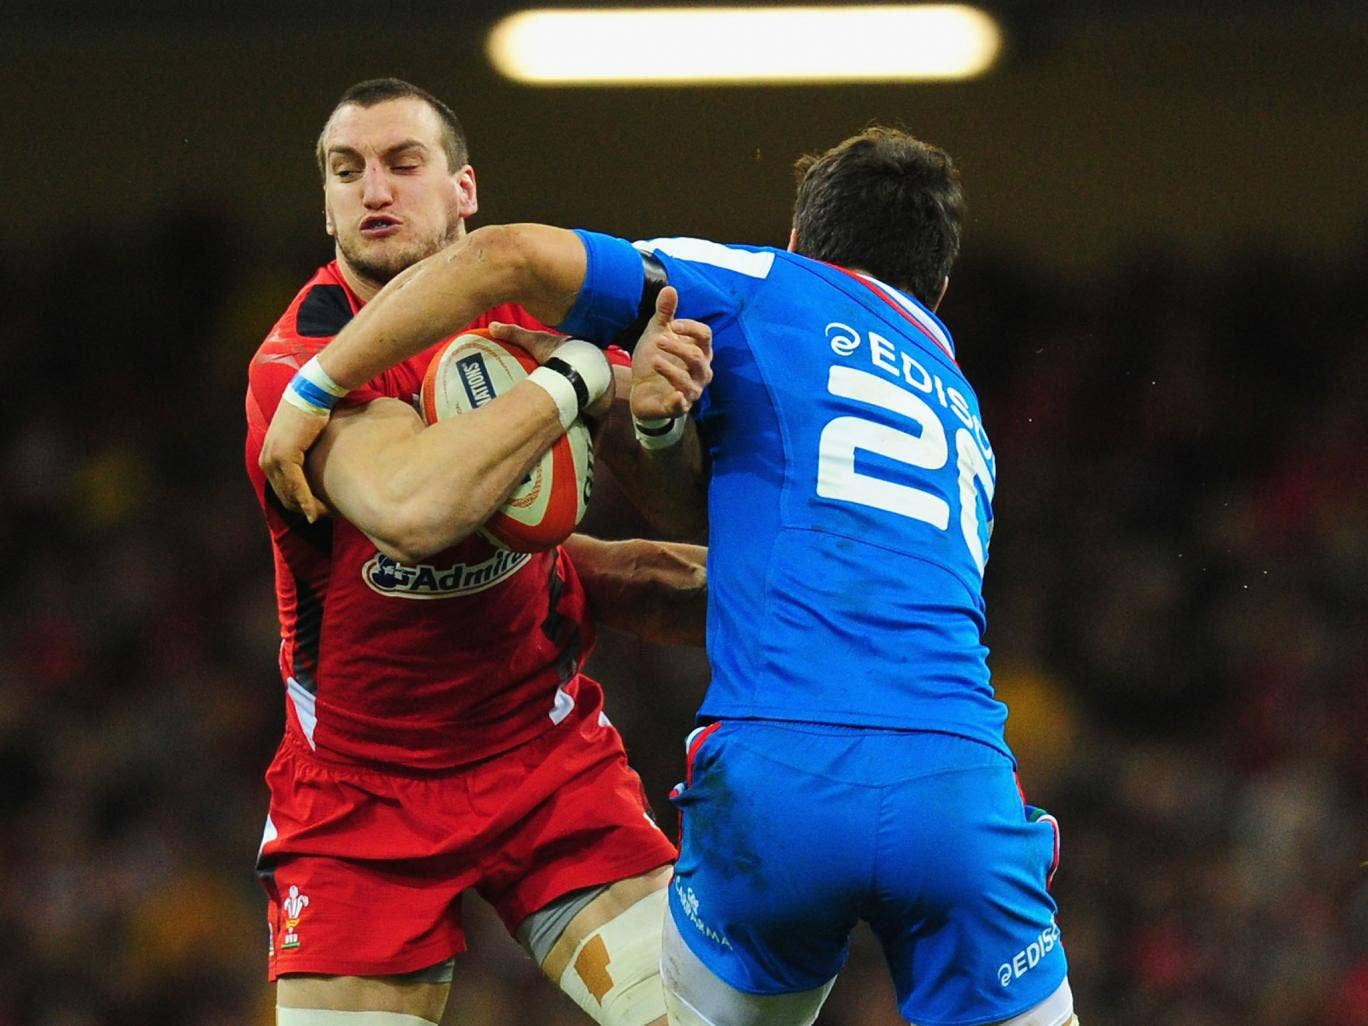 Sam Warburton will lead Wales out in Dublin as he returns from a shoulder injury for the Six Nations clash with Ireland